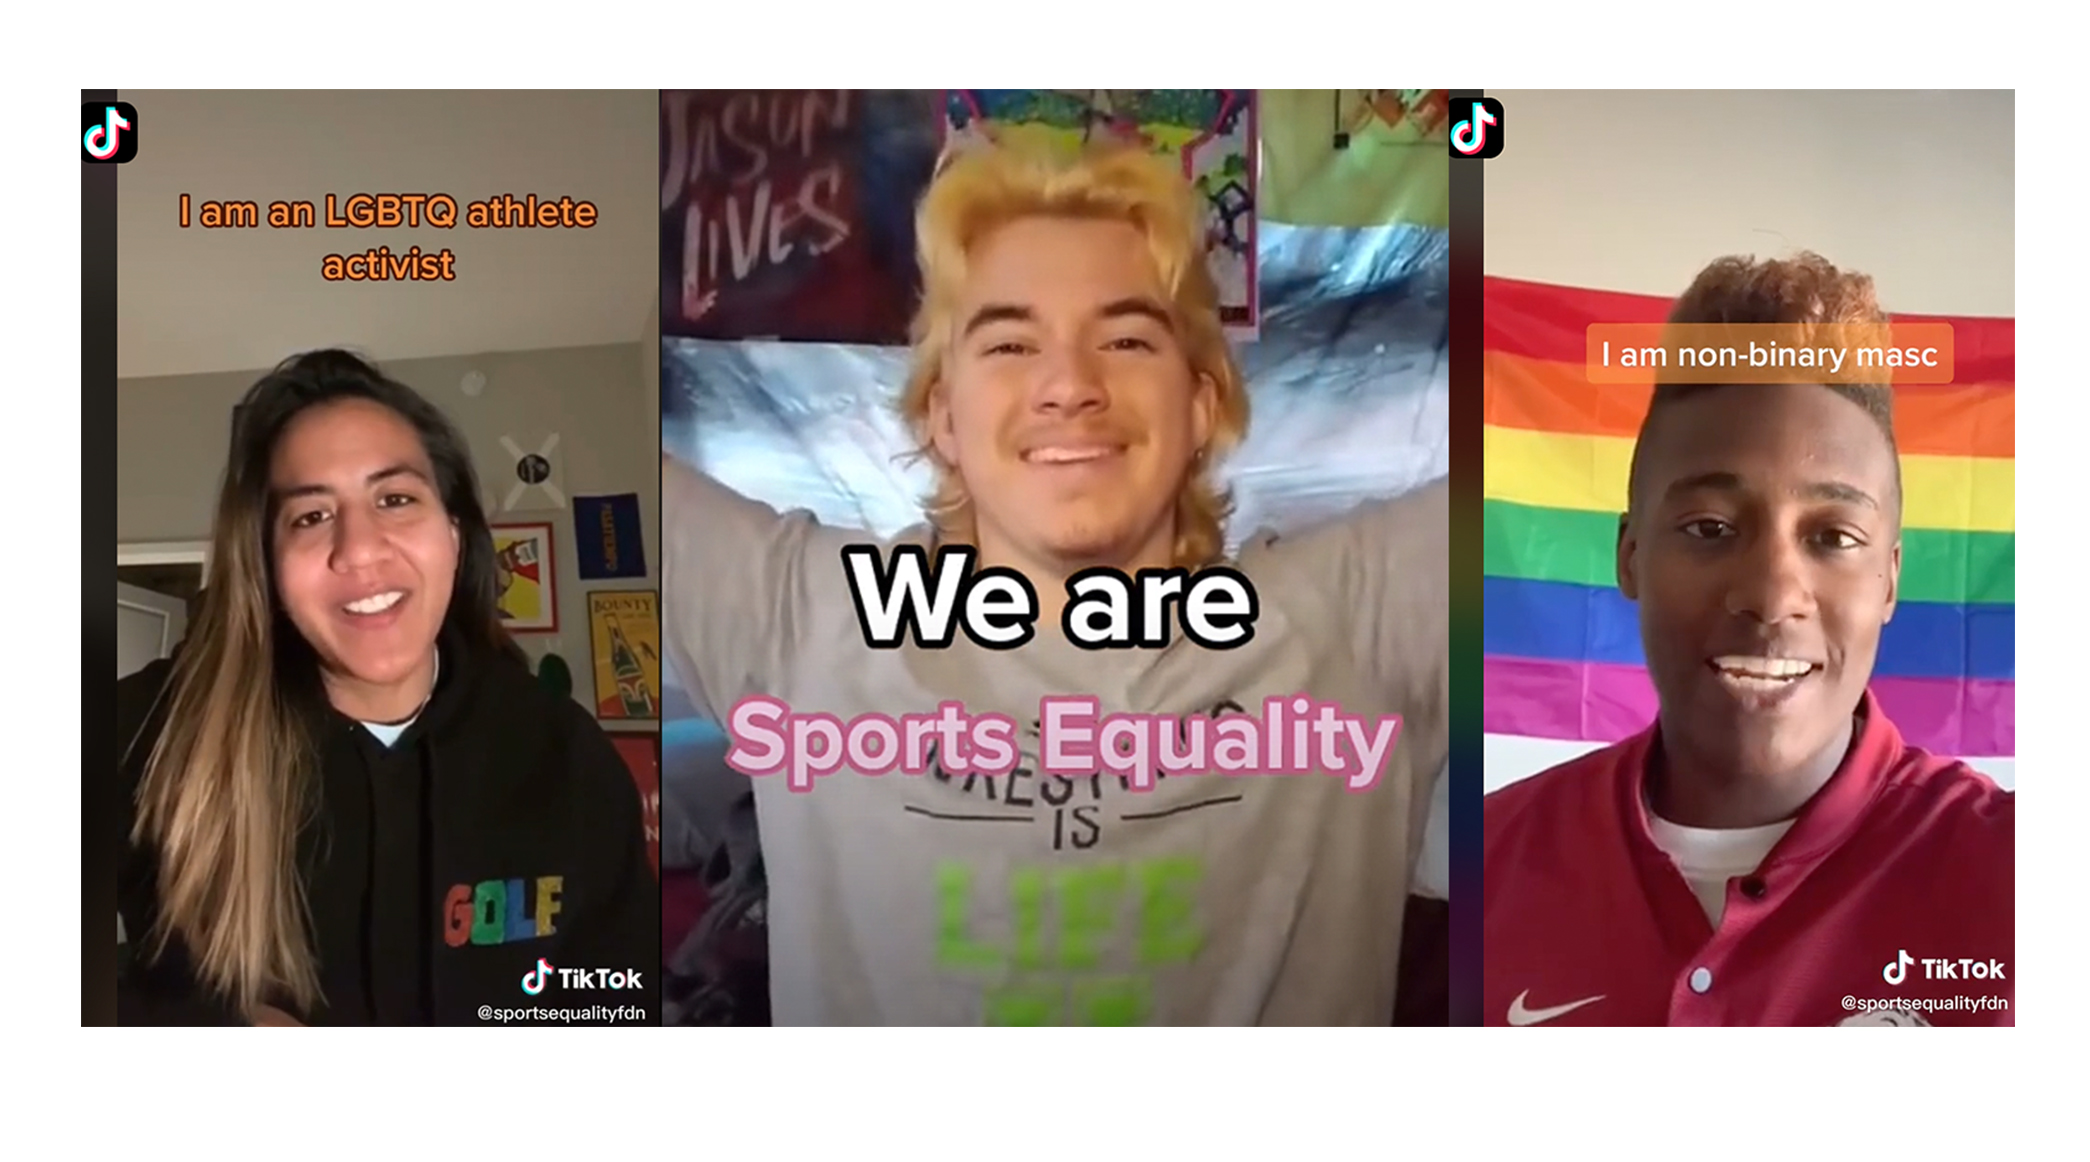 Maya Satya Reddy is a golfer who identifies as lesbian, Mack Beggs is a trans man and a college wrestler and KC is non-binary masc as well as a clinician for mental health and performance.